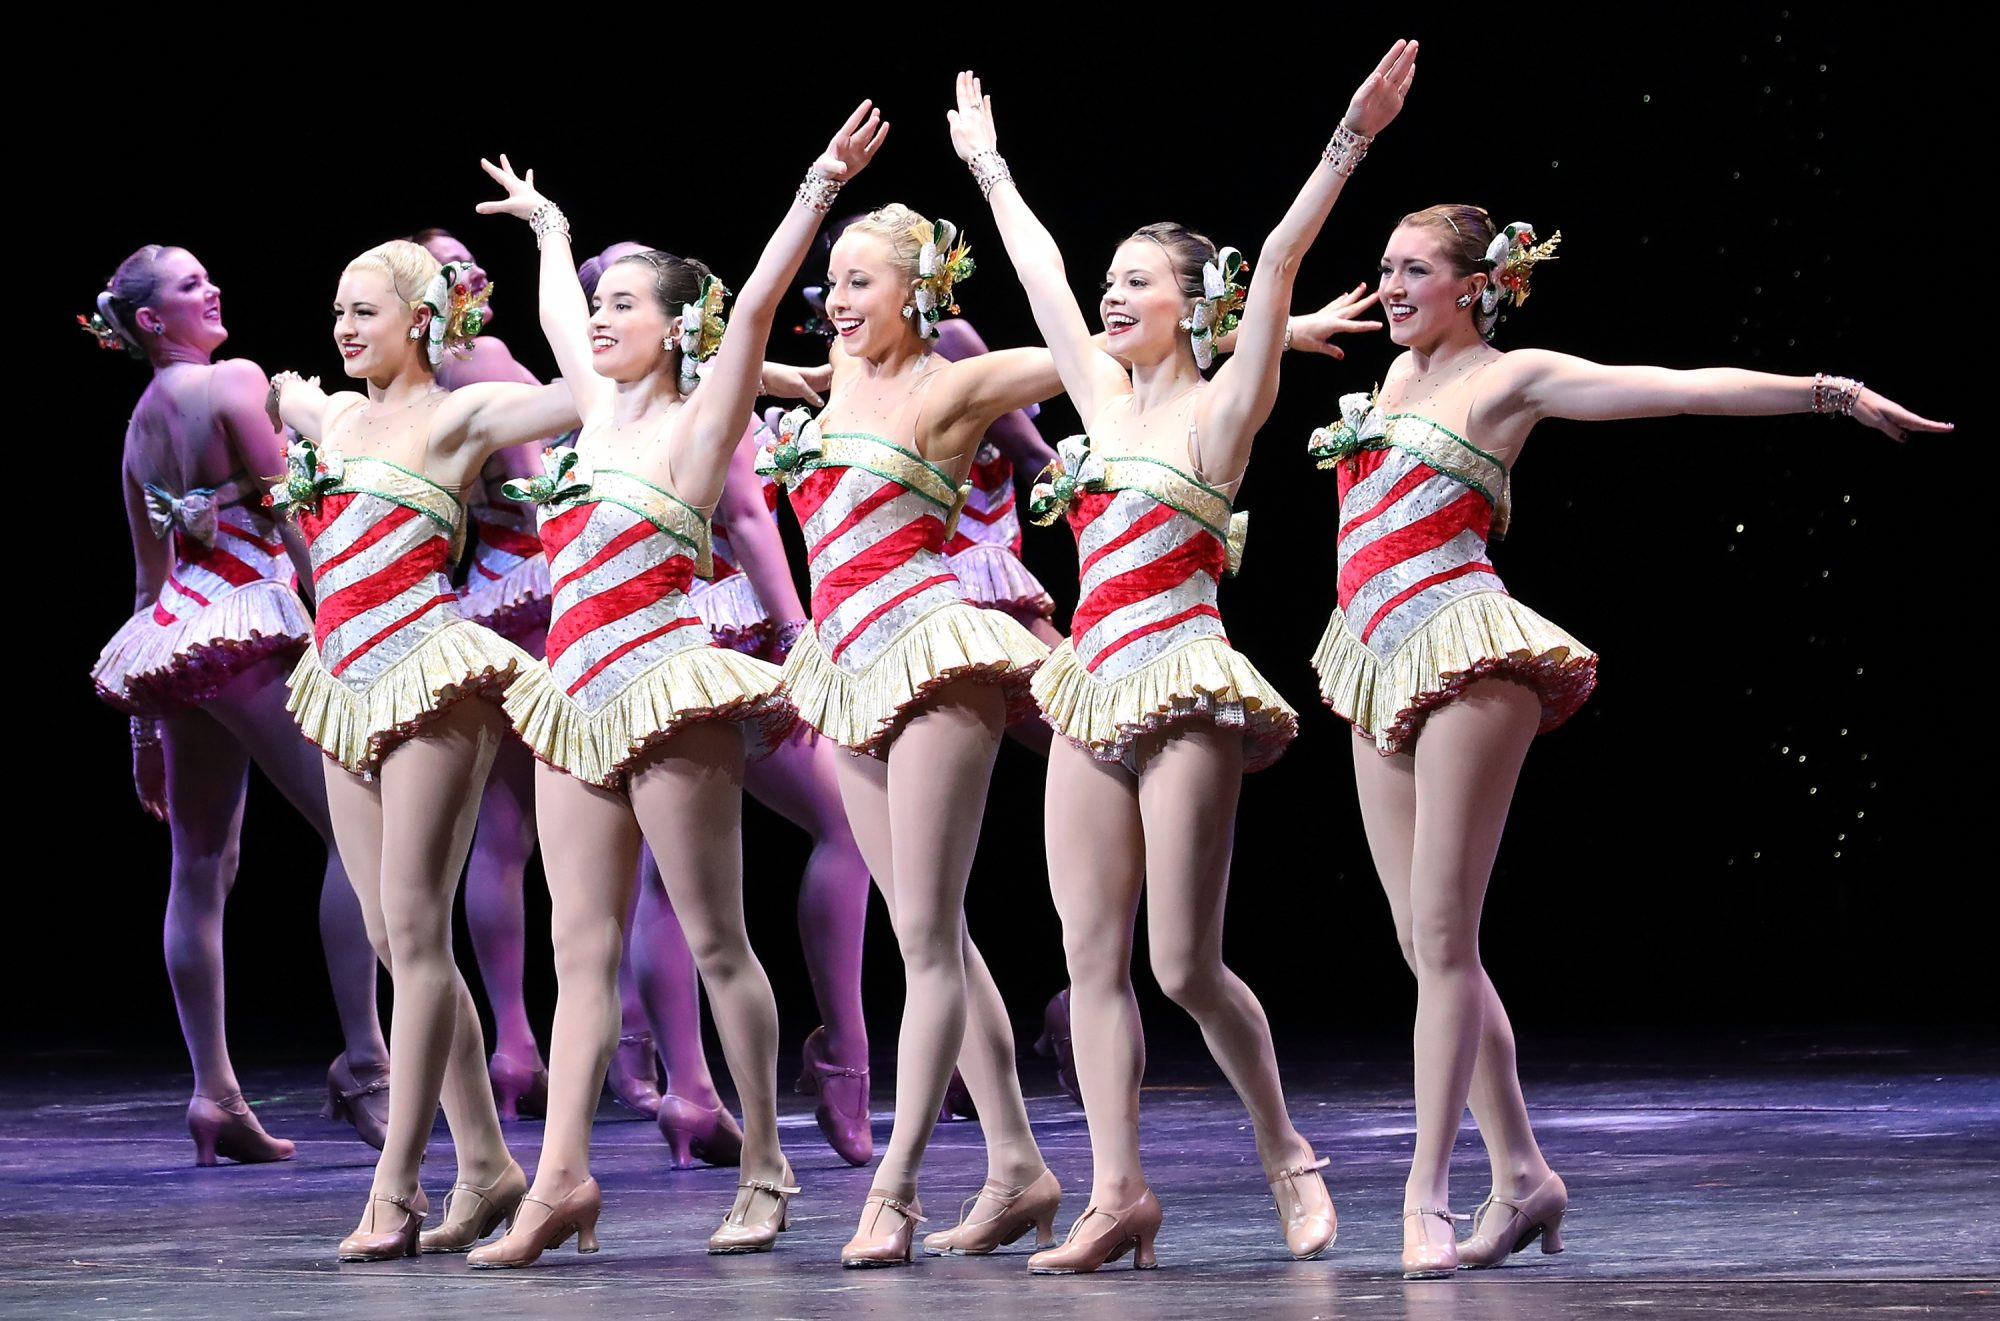 10 Exercises for Lean, Toned Legs Like the Rockettes